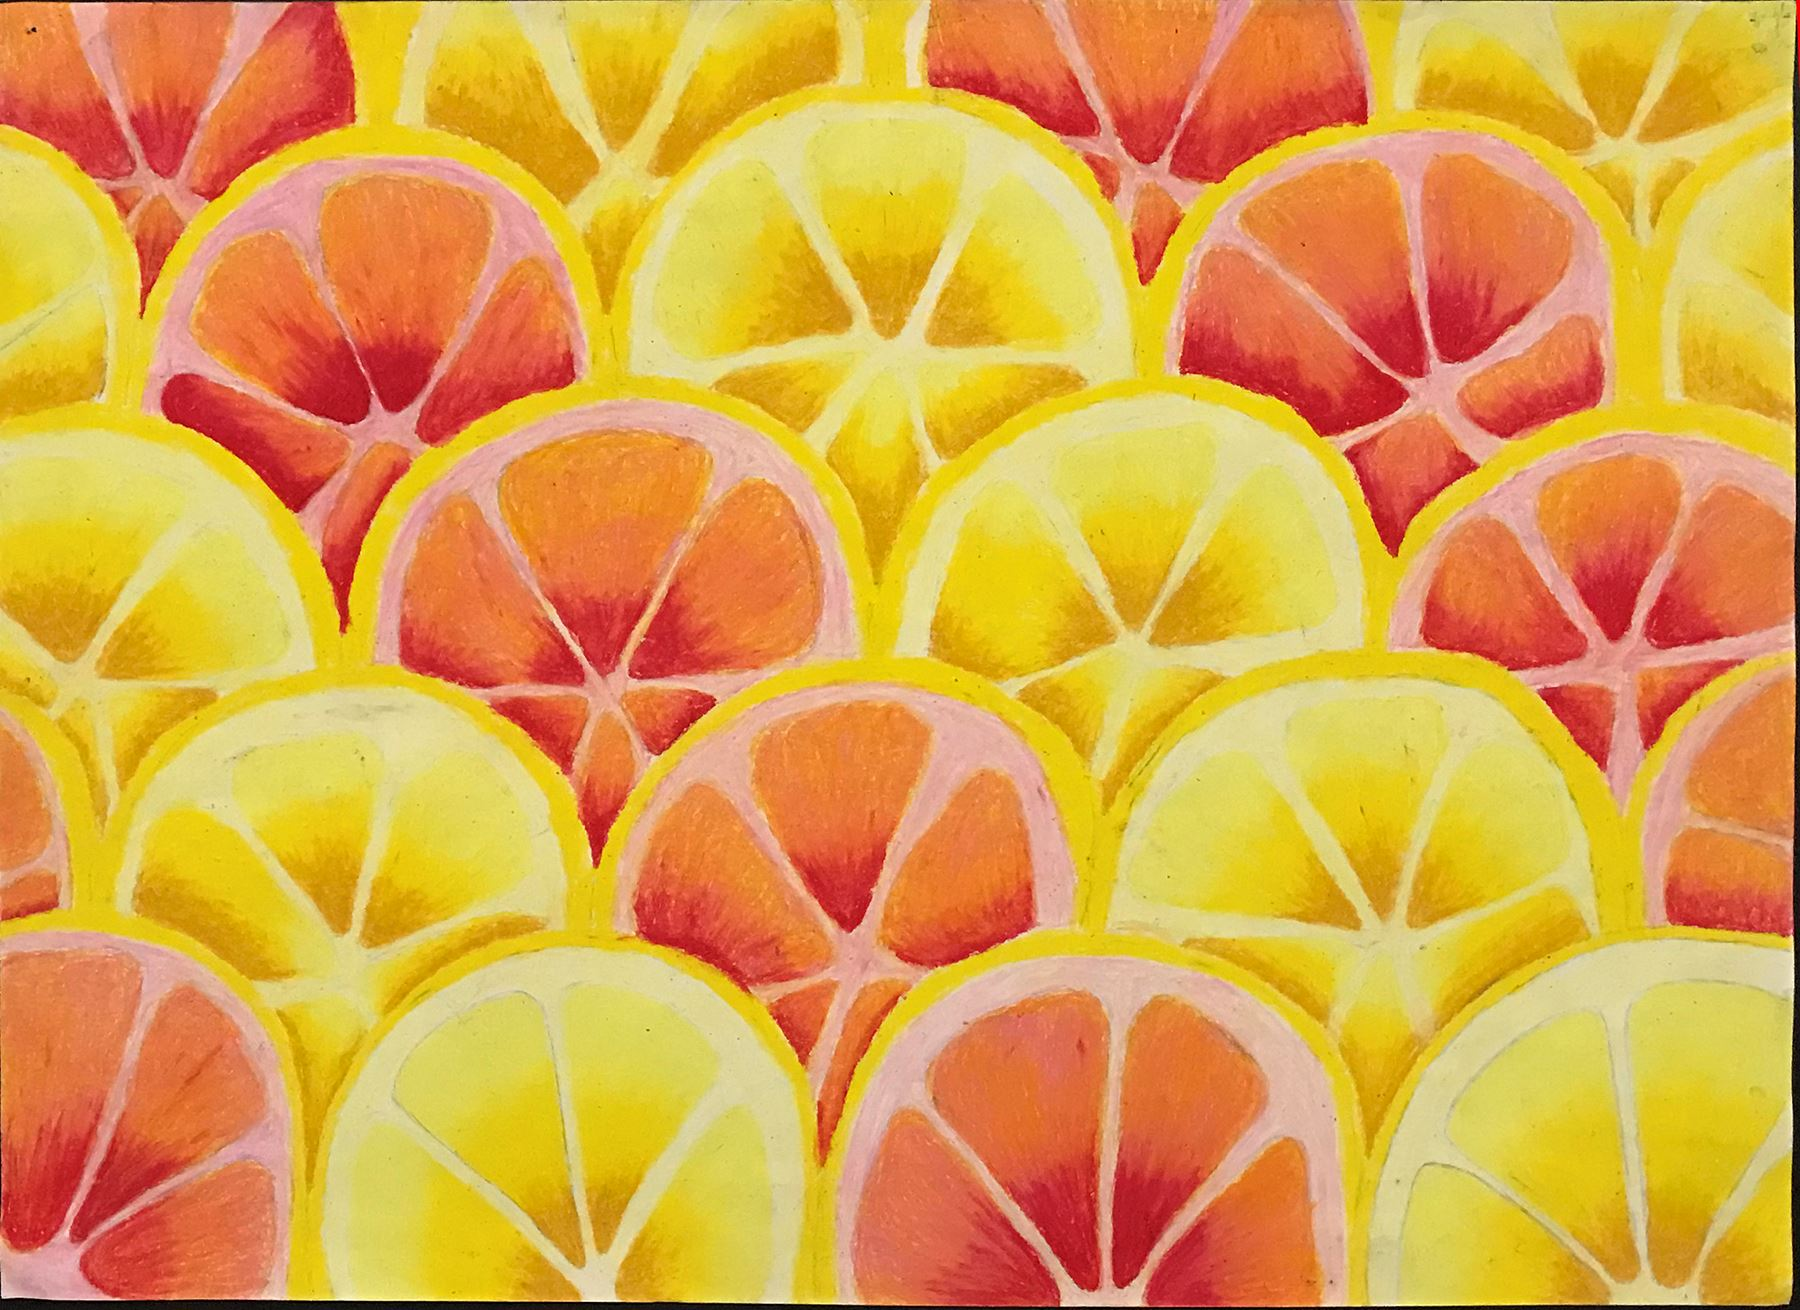 an oil pastel of slices of citrus fruit arranged symmetrically and in a pattern in yellows and reds